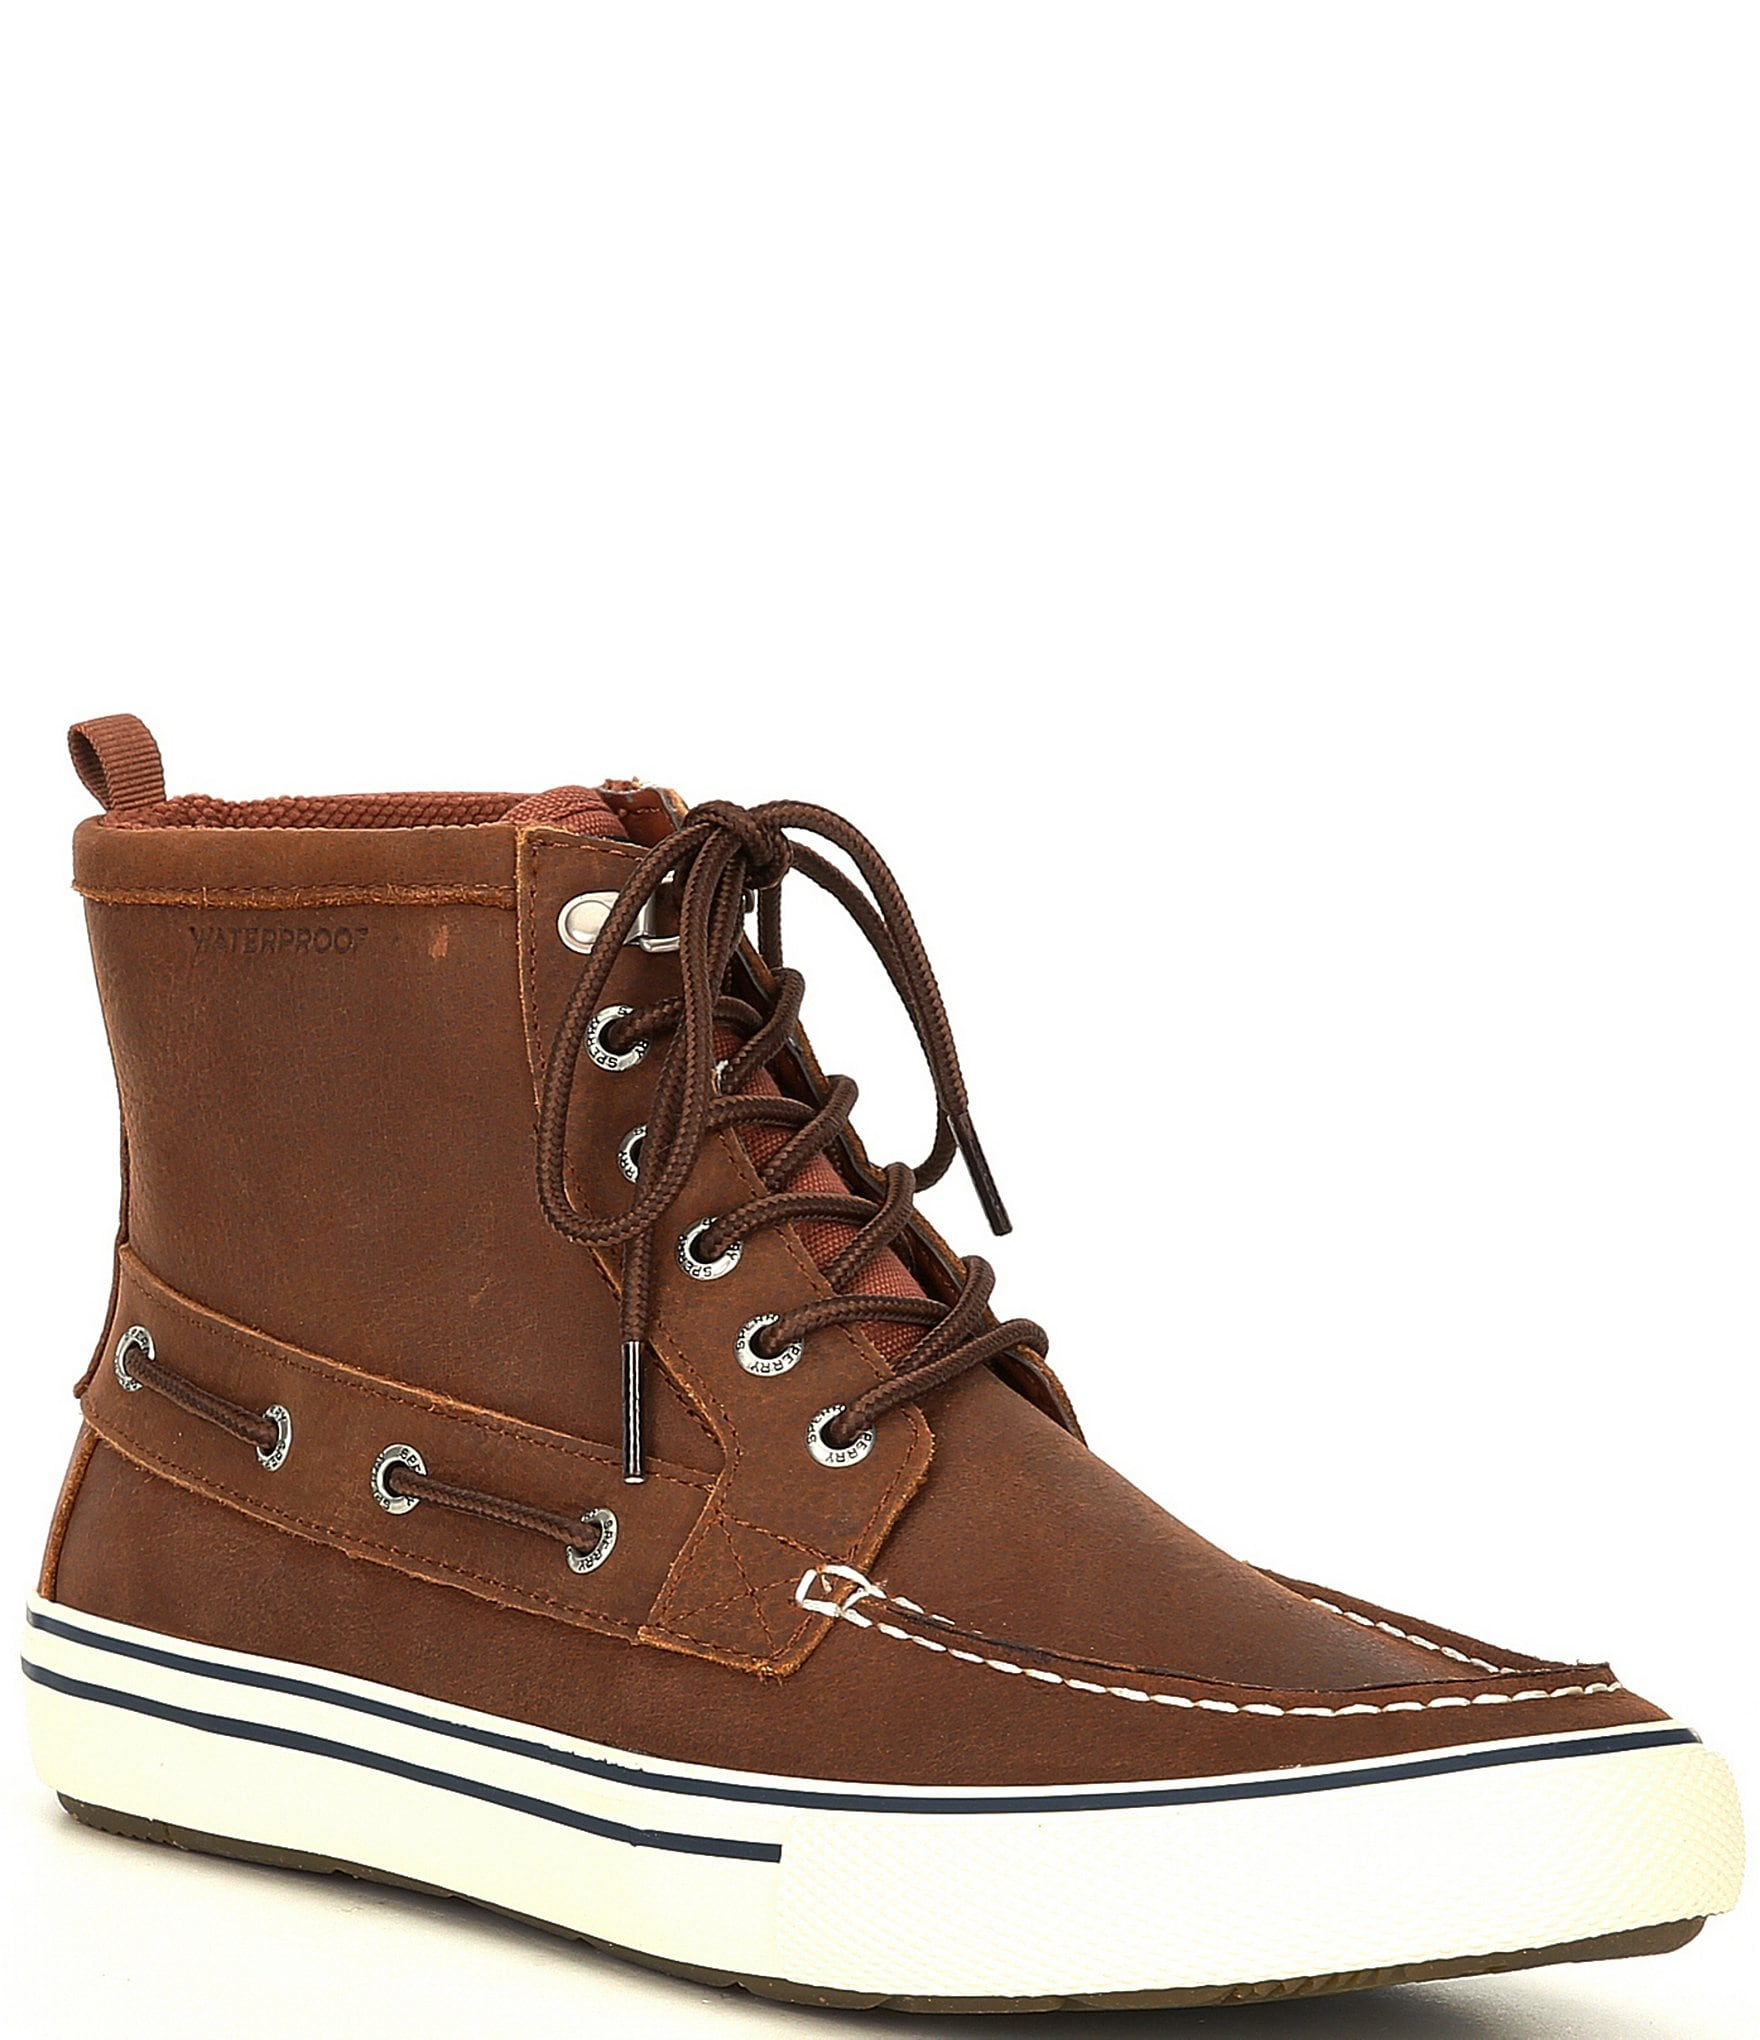 Sperry Men's Bahama Storm Leather Suede